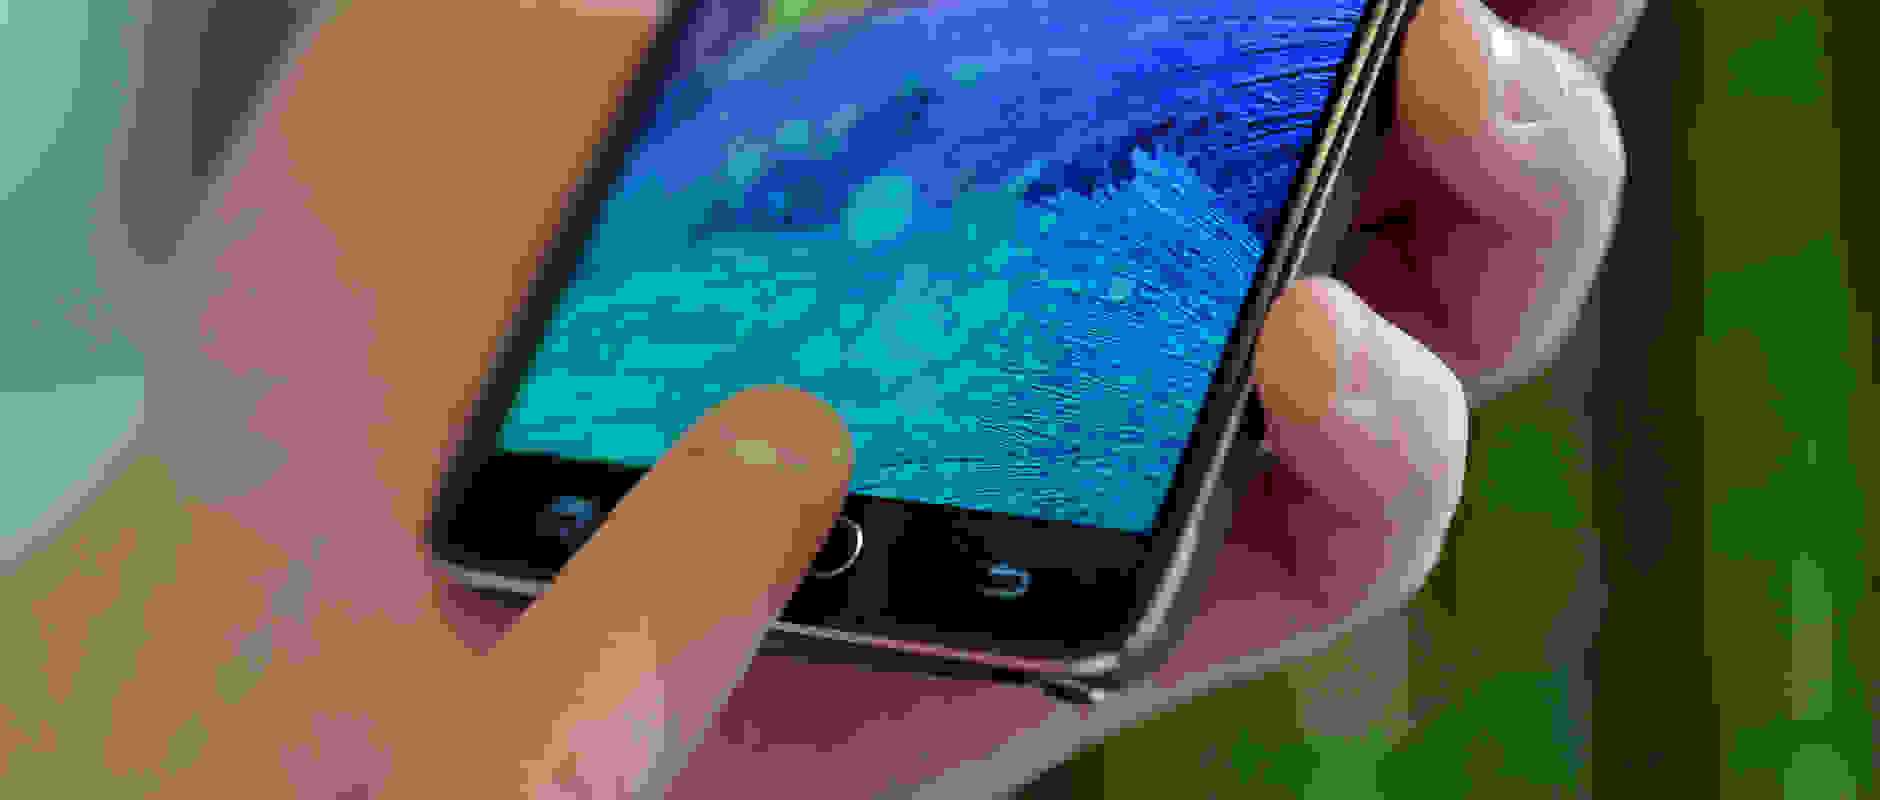 A photograph of the Samsung Galaxy Note 4's fingerprint scanner.